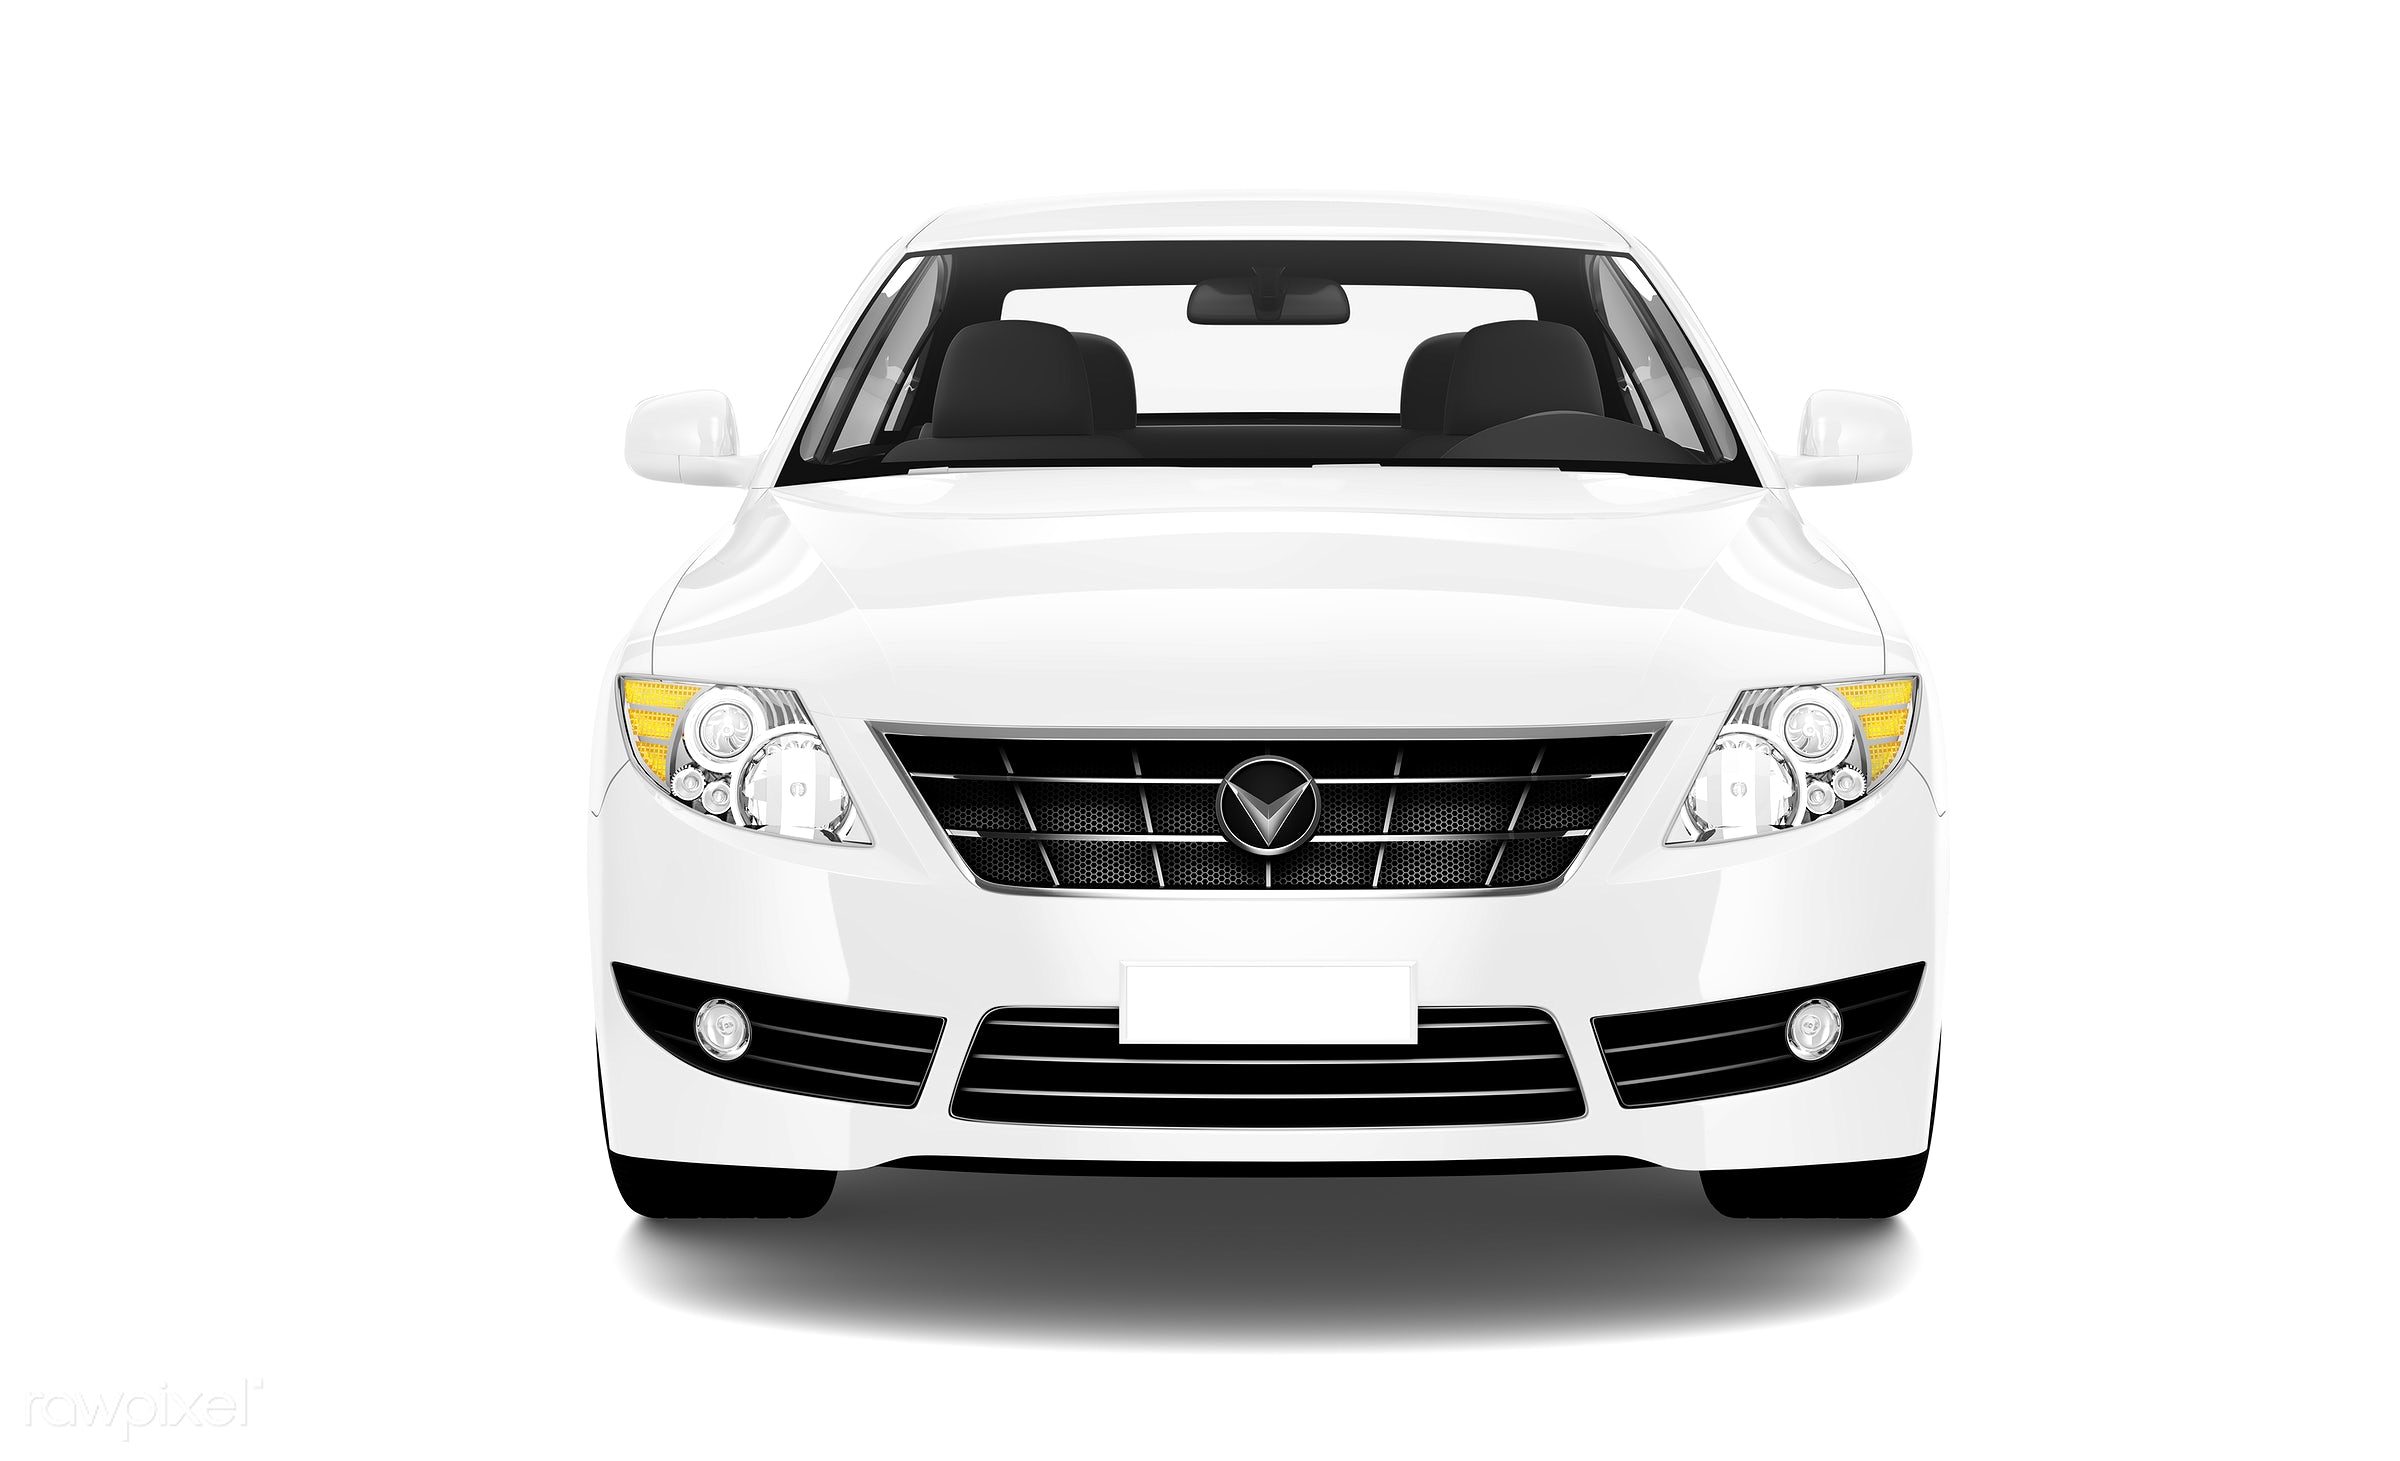 Three dimensional image of car - car, 3d, automobile, automotive, brandless, concept car, graphic, holiday, illustration,...